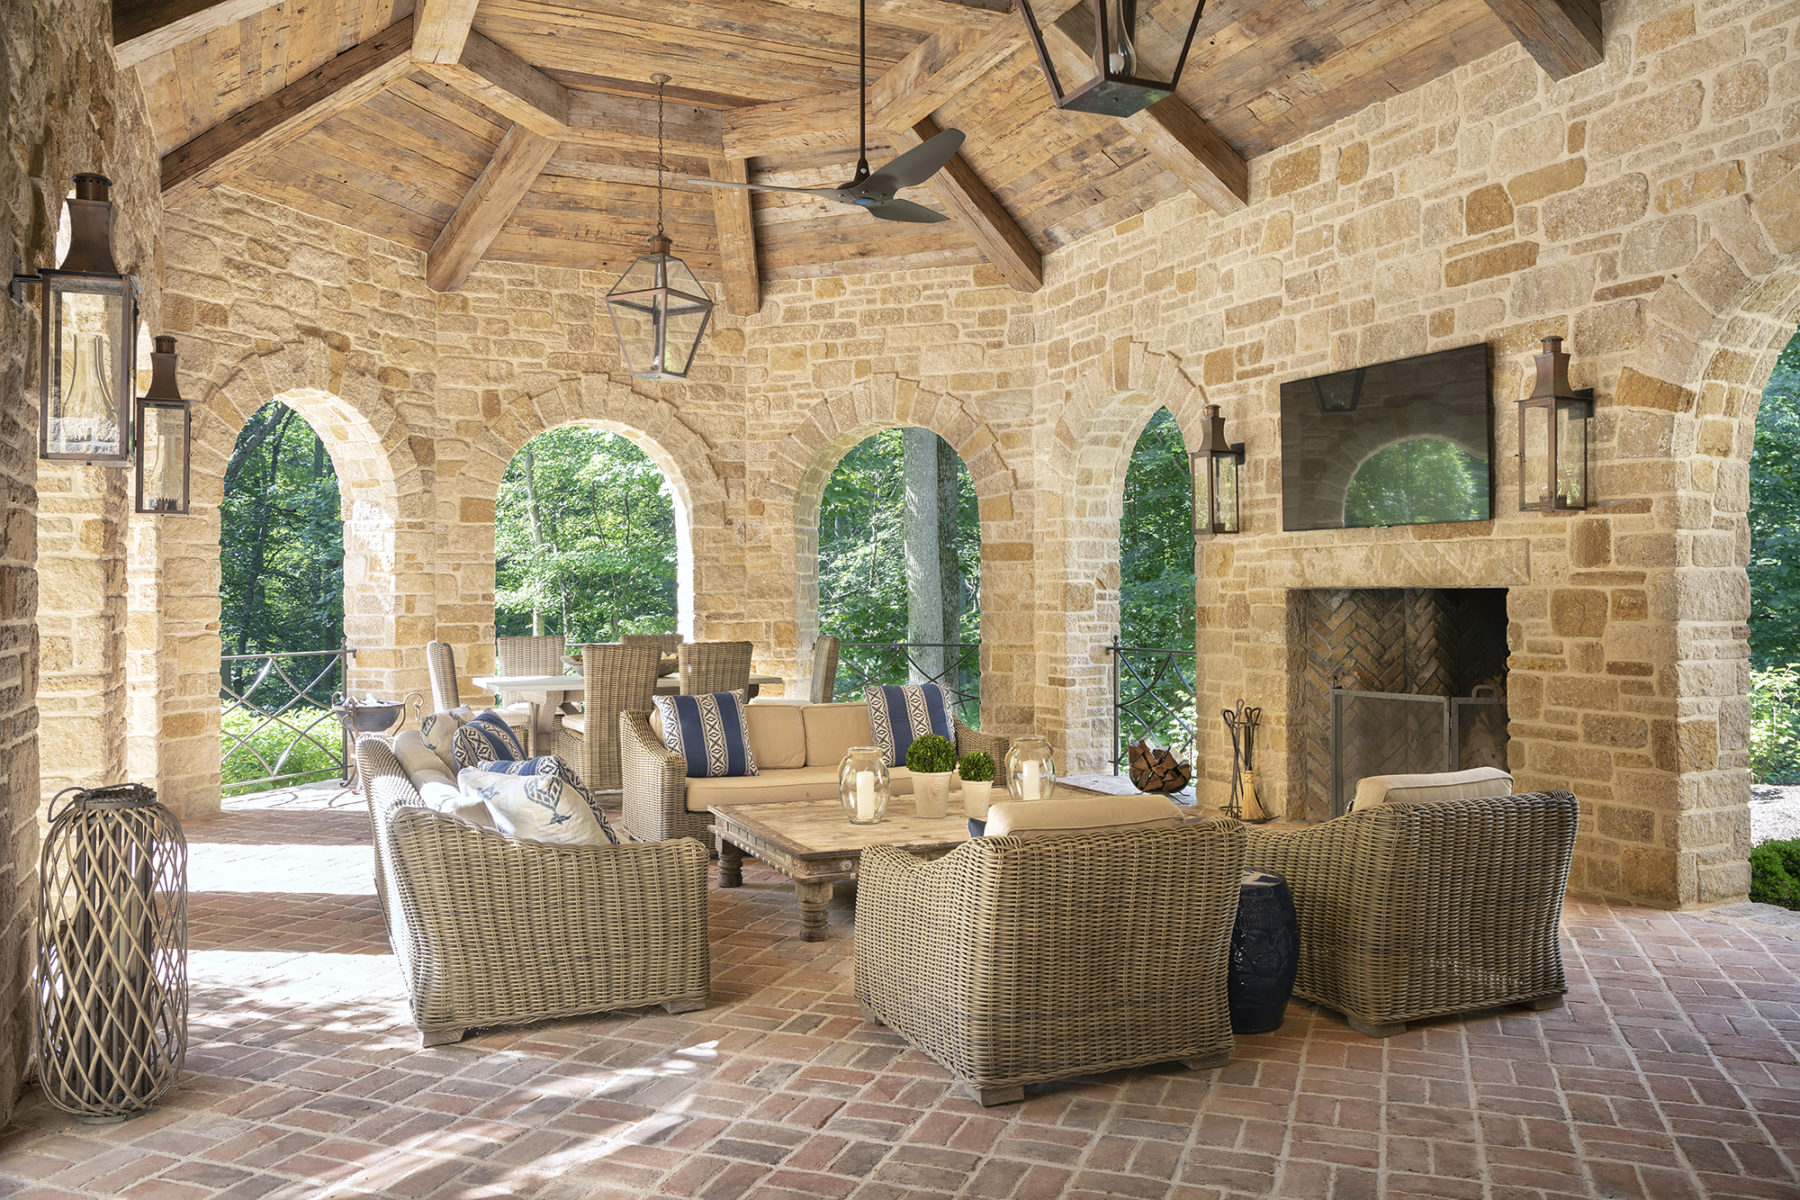 Harrison Design Indoor outdoor relaxed living with covered terrace stone archways and wood clad high ceiling with wood beams